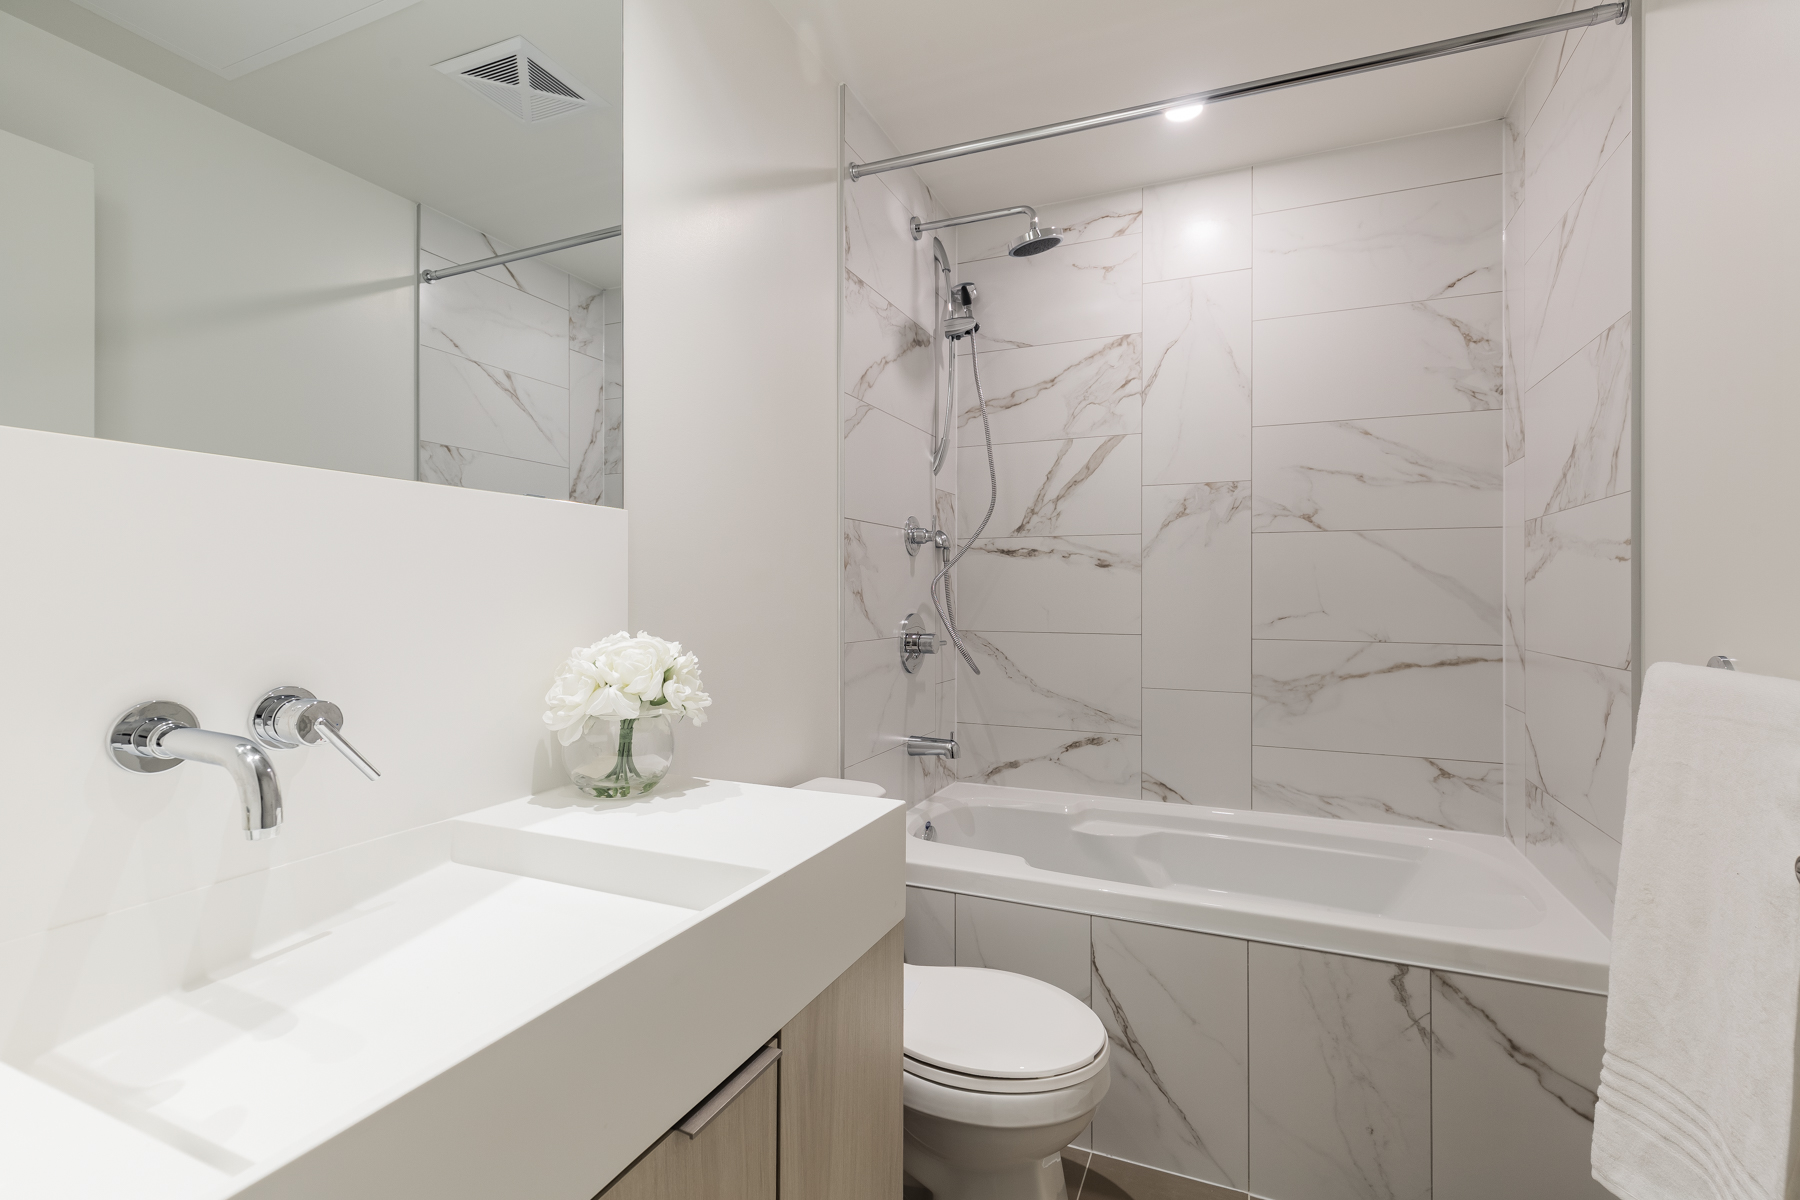 20 Richardson St Suite 3108 second bedroom with soaker tub and beautiful marble tiles.